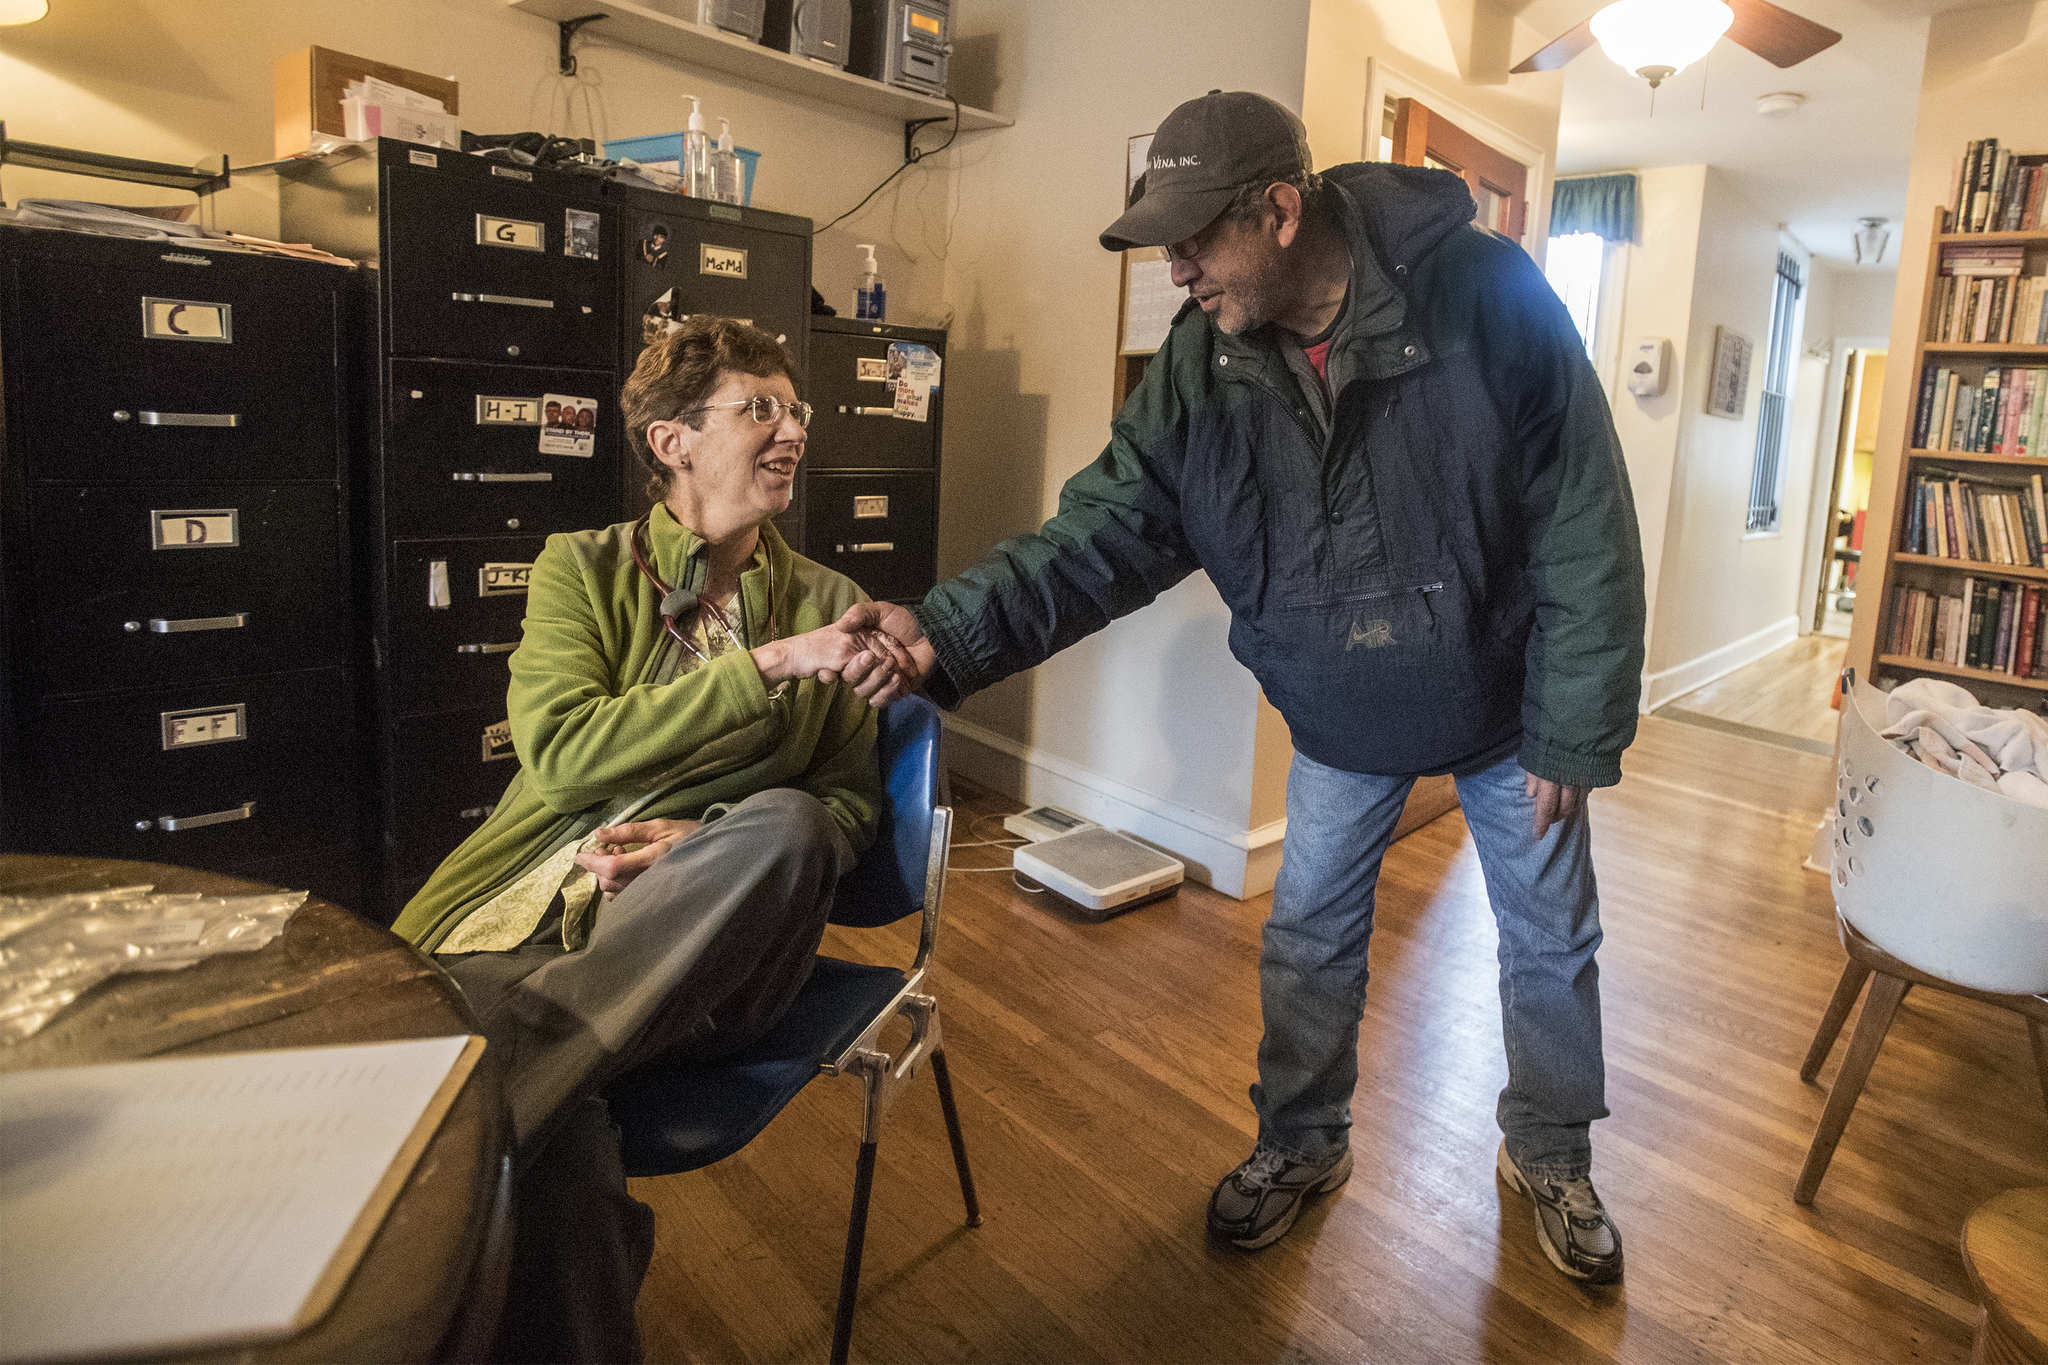 Mary Beth Appel, a nurse at the Catholic Worker Clinic in Kensington, reaches out to recieve the thanks of one of the clinicÕs clients after he was treated on Wednesday April 25, 2018.